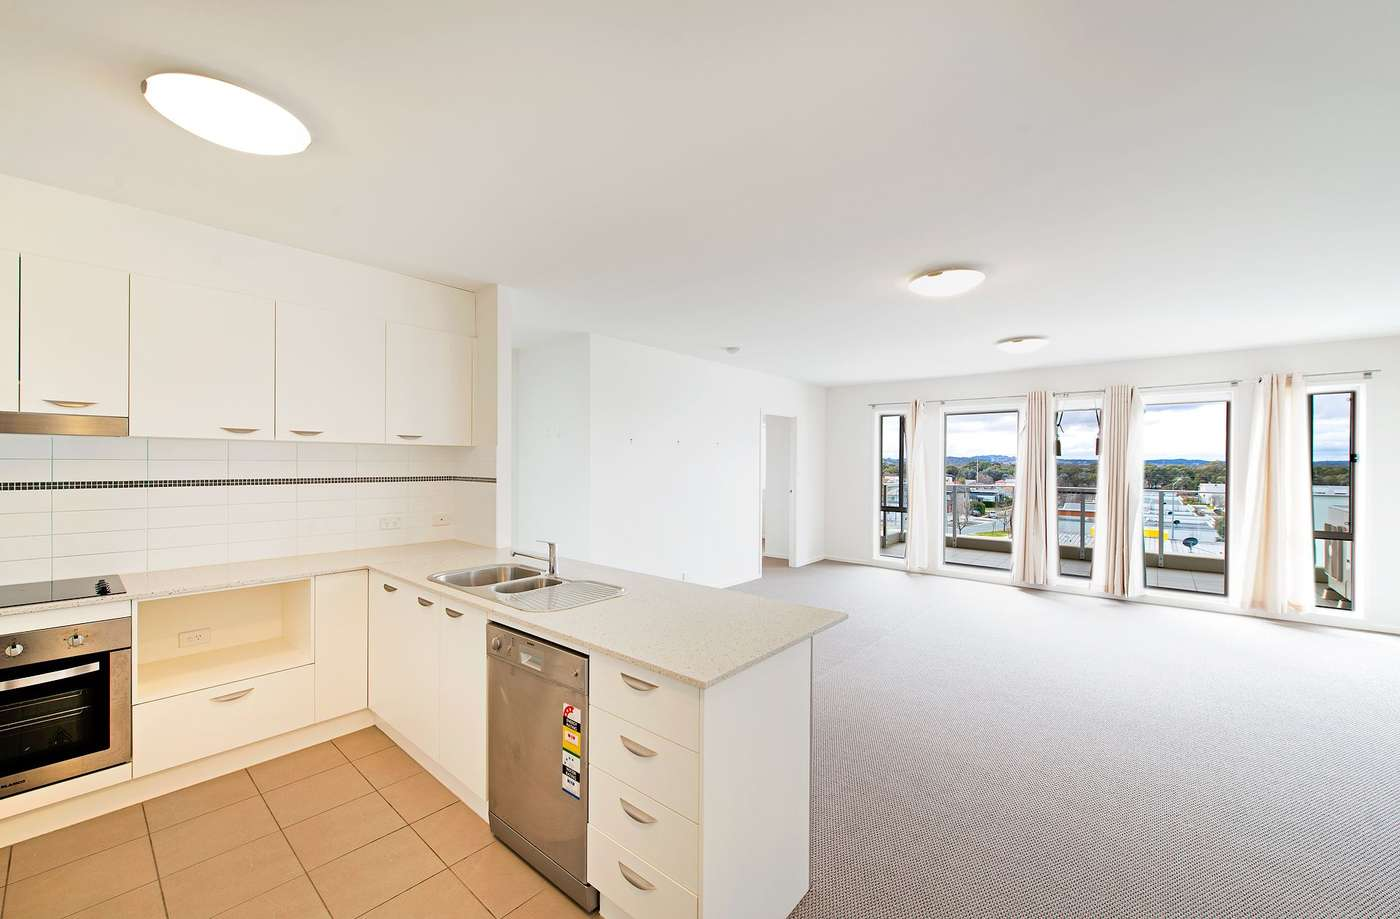 Main view of Homely house listing, 55/136 Thynne Street, Bruce, ACT 2617